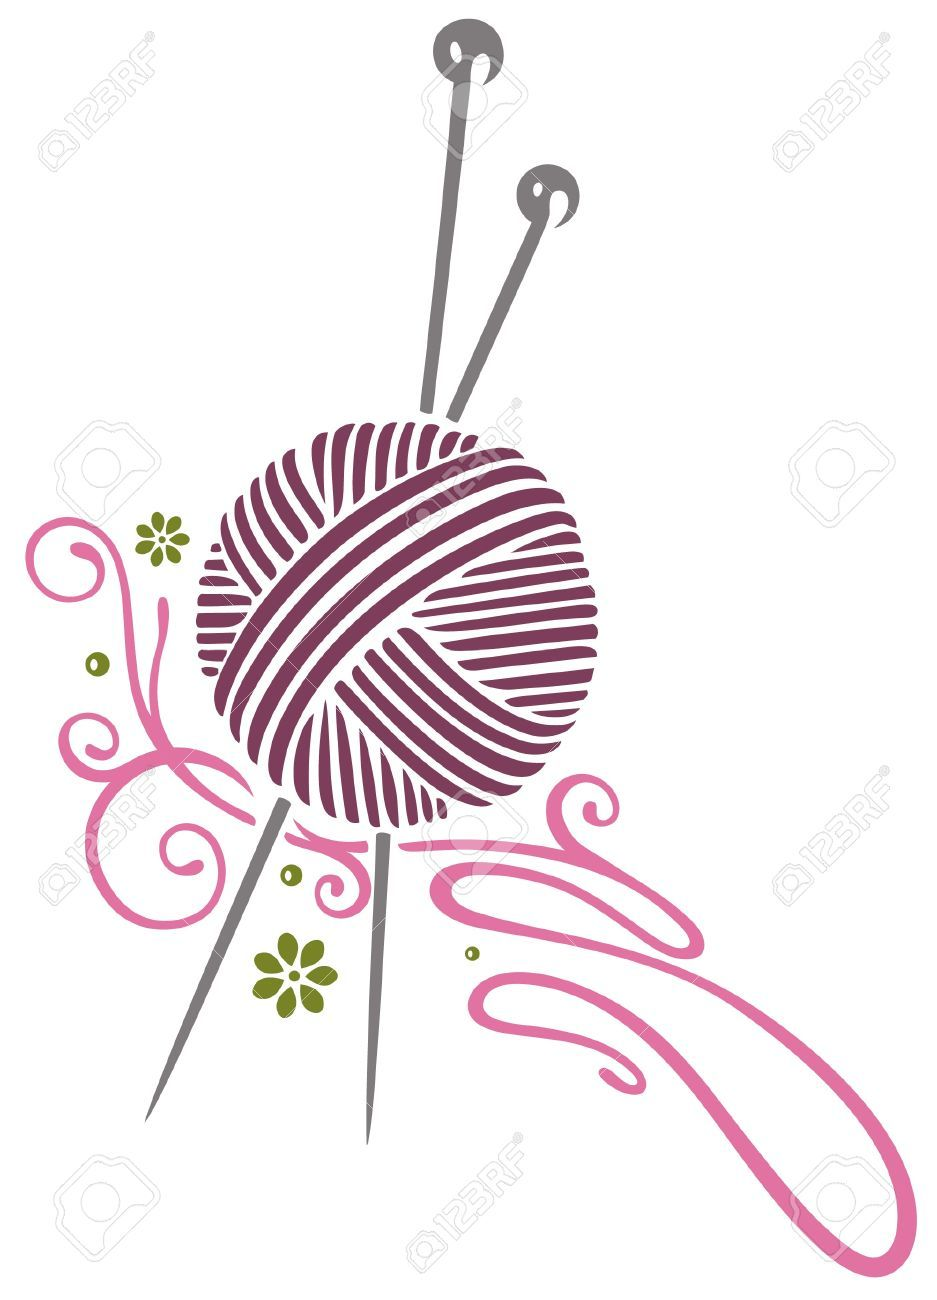 Knitting Crocheting Clipart : Purple wool with knitting needles stock vector